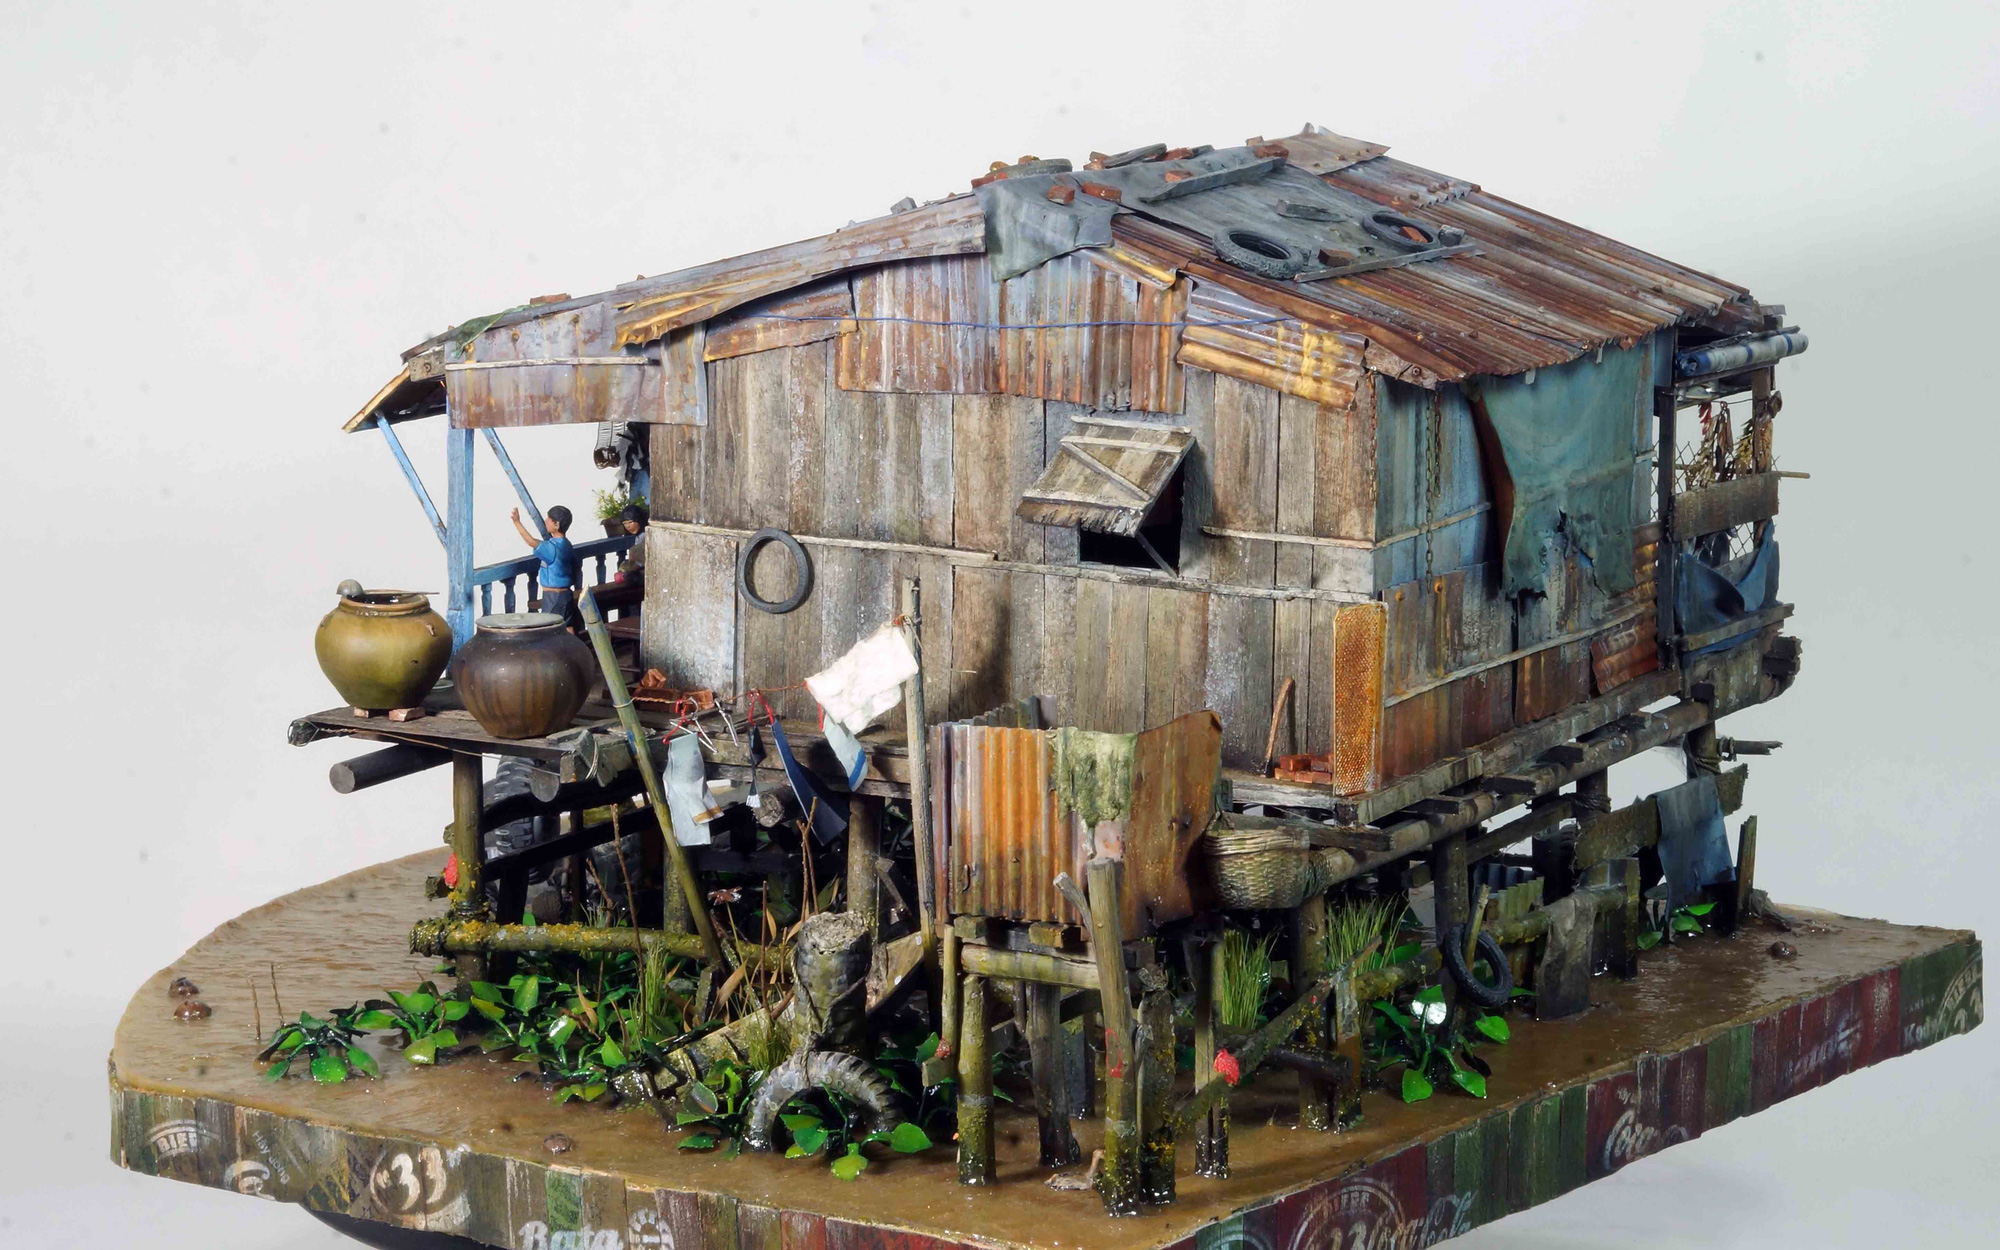 'Nha tren song' (House on the river), a scale model by Vietnamese artist Le Xuan Giang that won the gold medal at a fair in Malaysia. Photo: Cong Trieu / Tuoi Tre